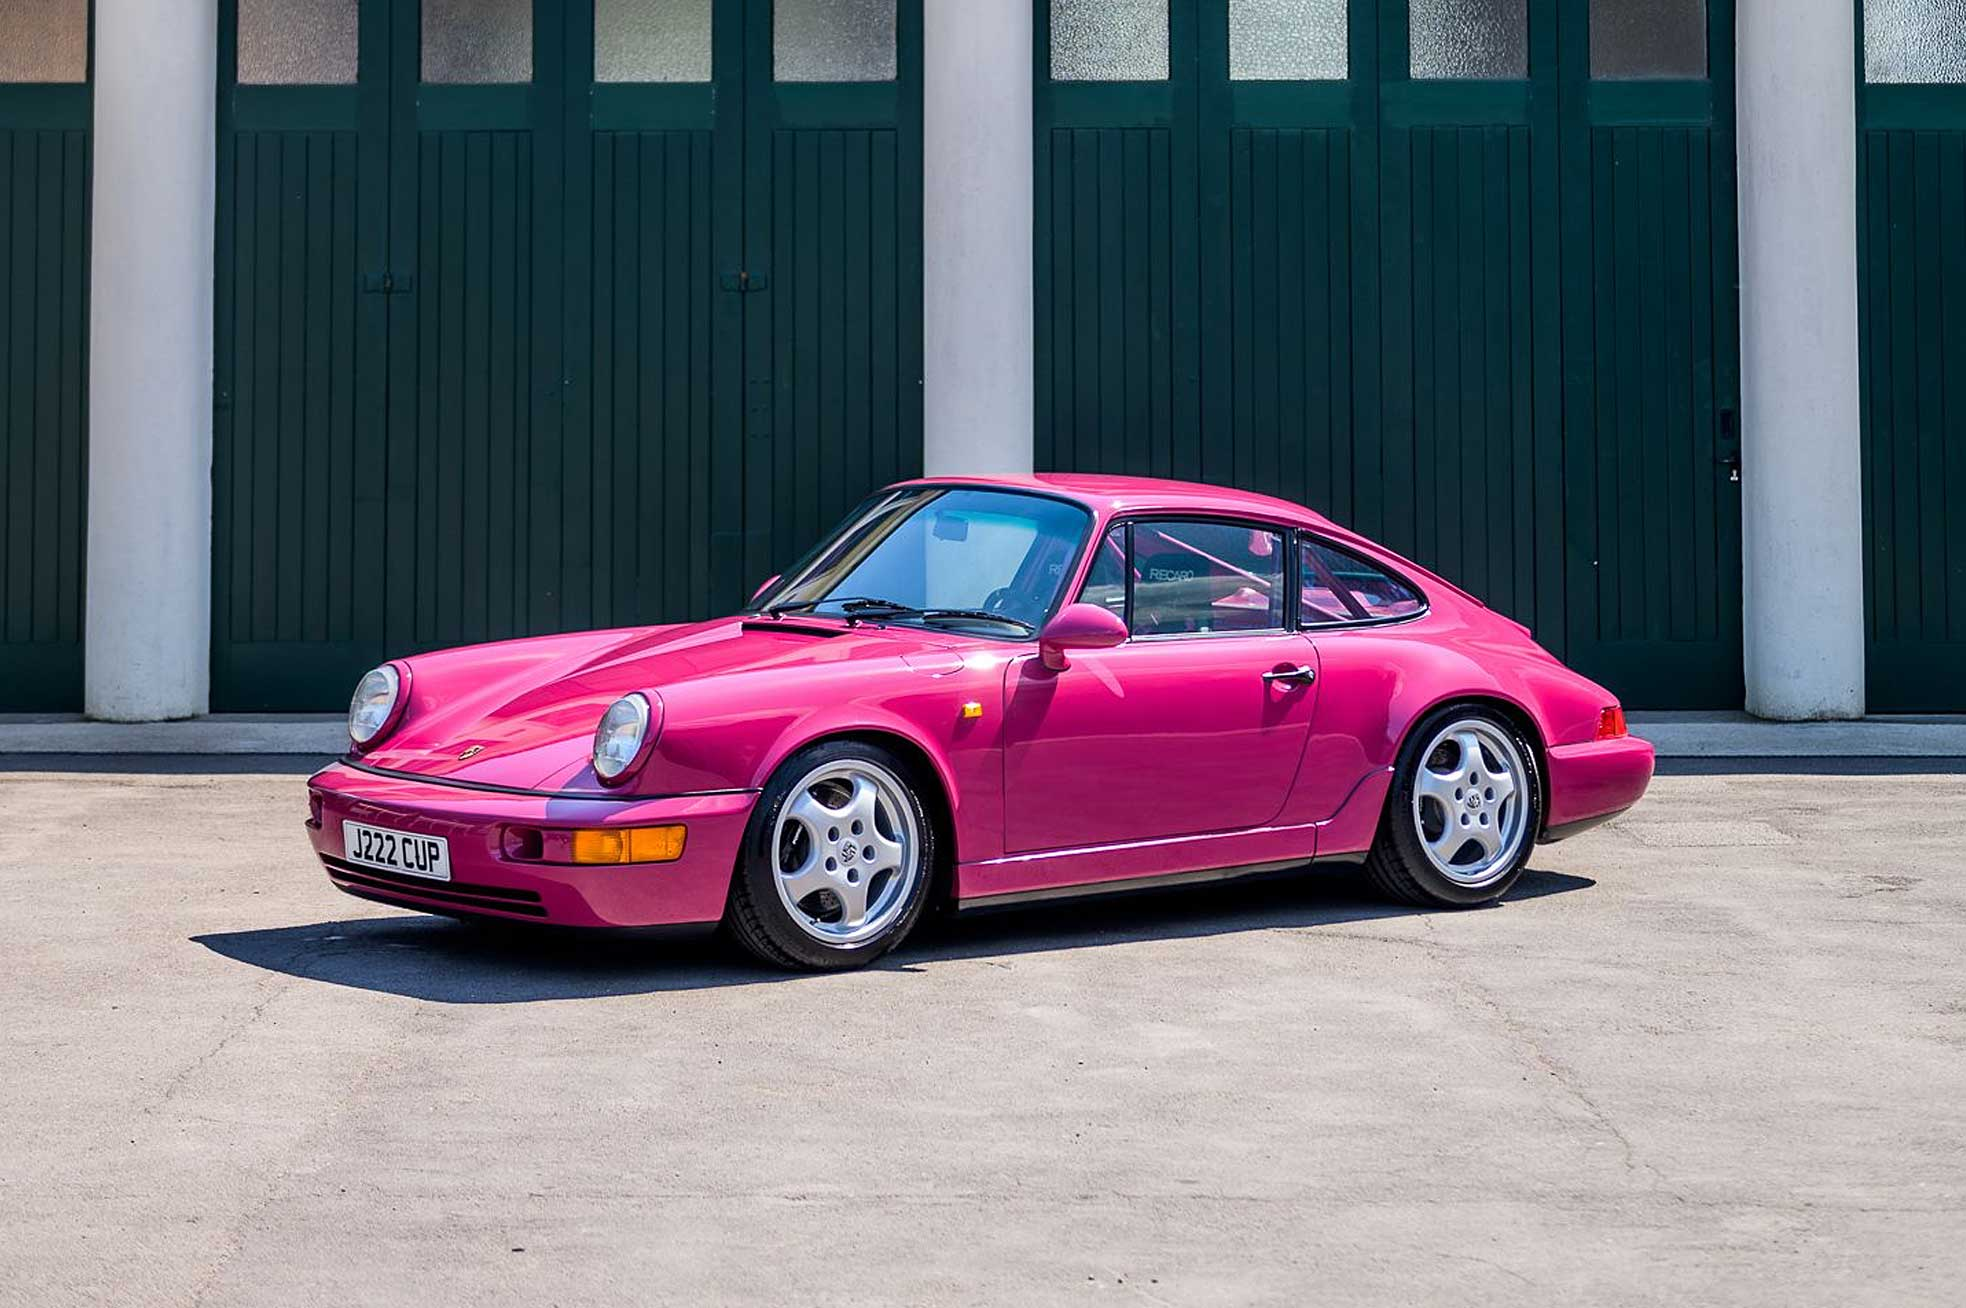 For sale 1991 Porsche 911 (964) Carrera RS Clubsport - Sports Purpose, Bicester Heritage, Oxon, UK